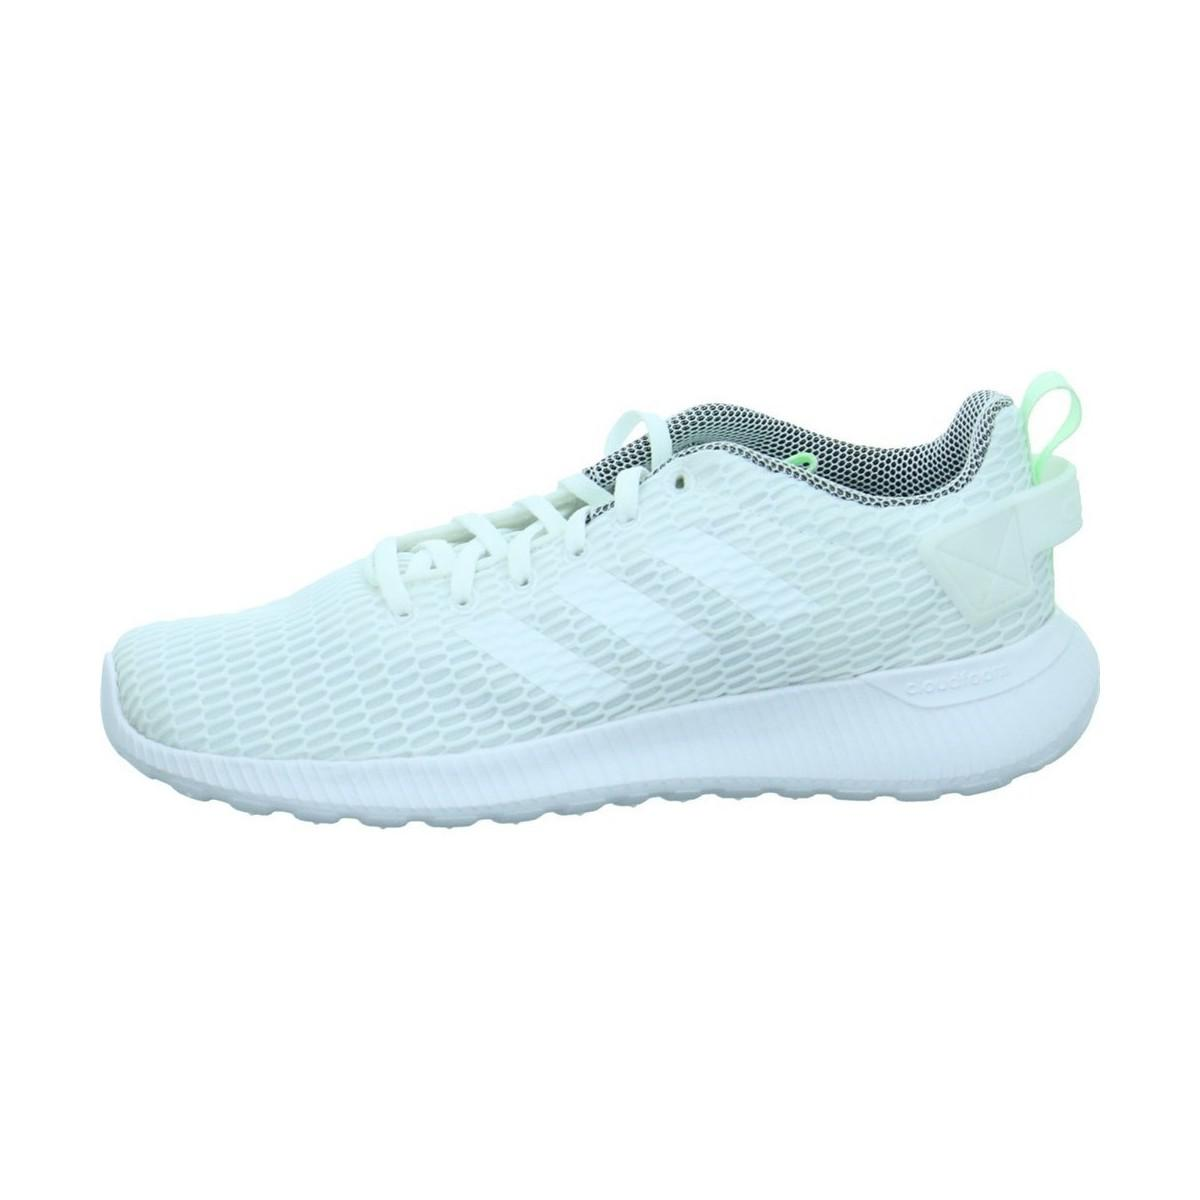 finest selection 56697 8e499 Adidas Cloudfoam Lite Racer Cc Womens Shoes (trainers) In Wh